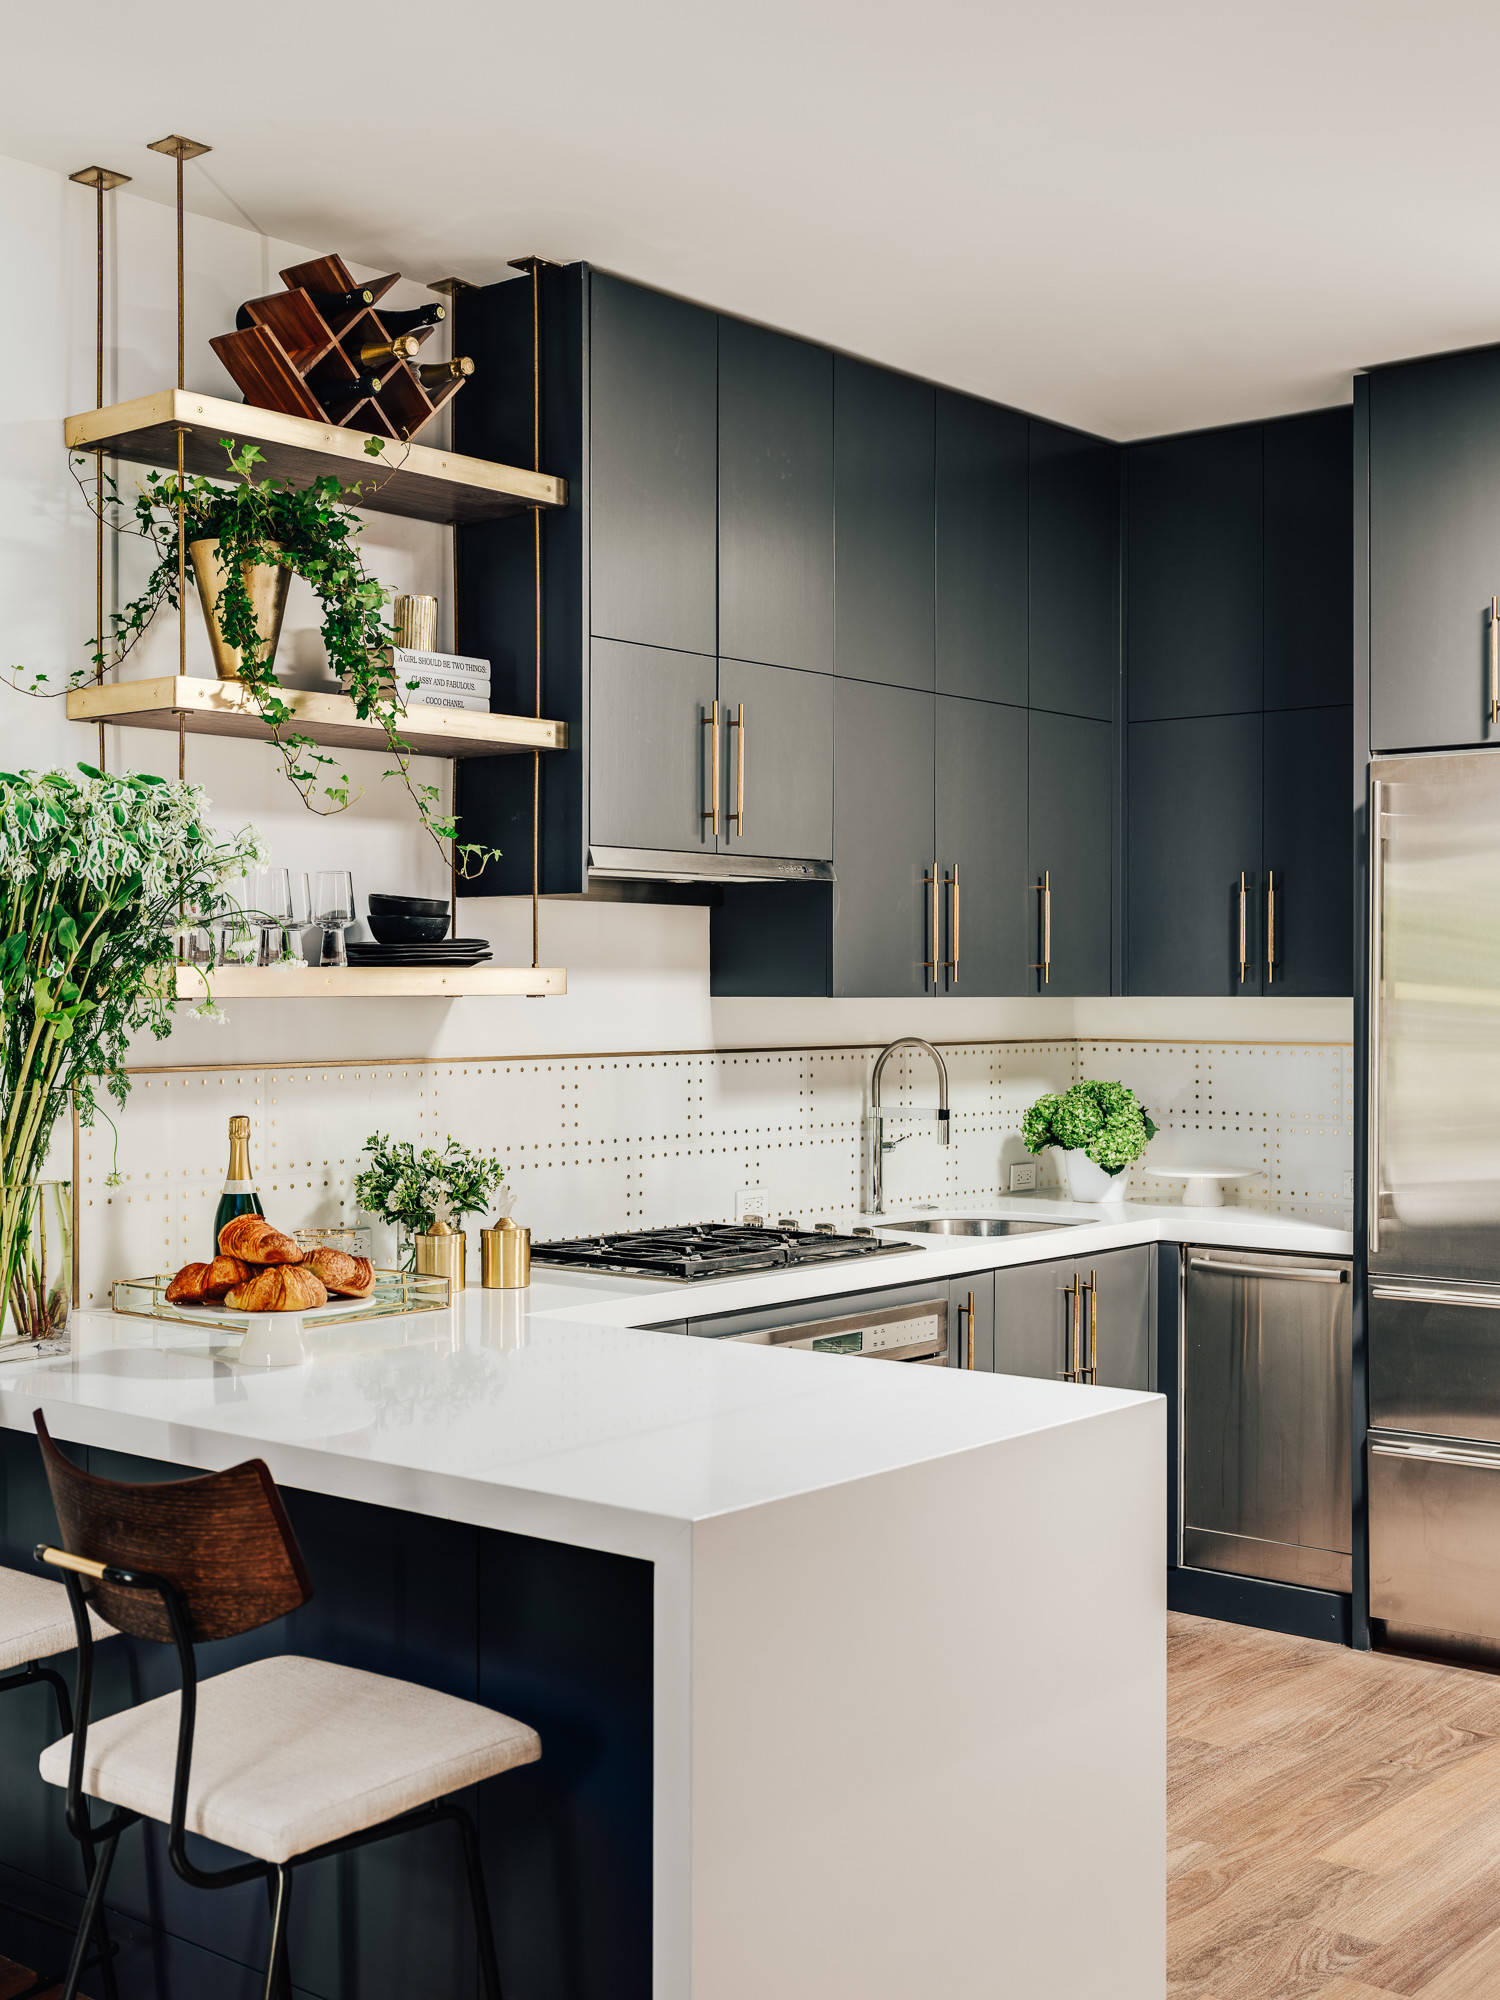 75 Beautiful Kitchen With A Peninsula Pictures Ideas April 2021 Houzz